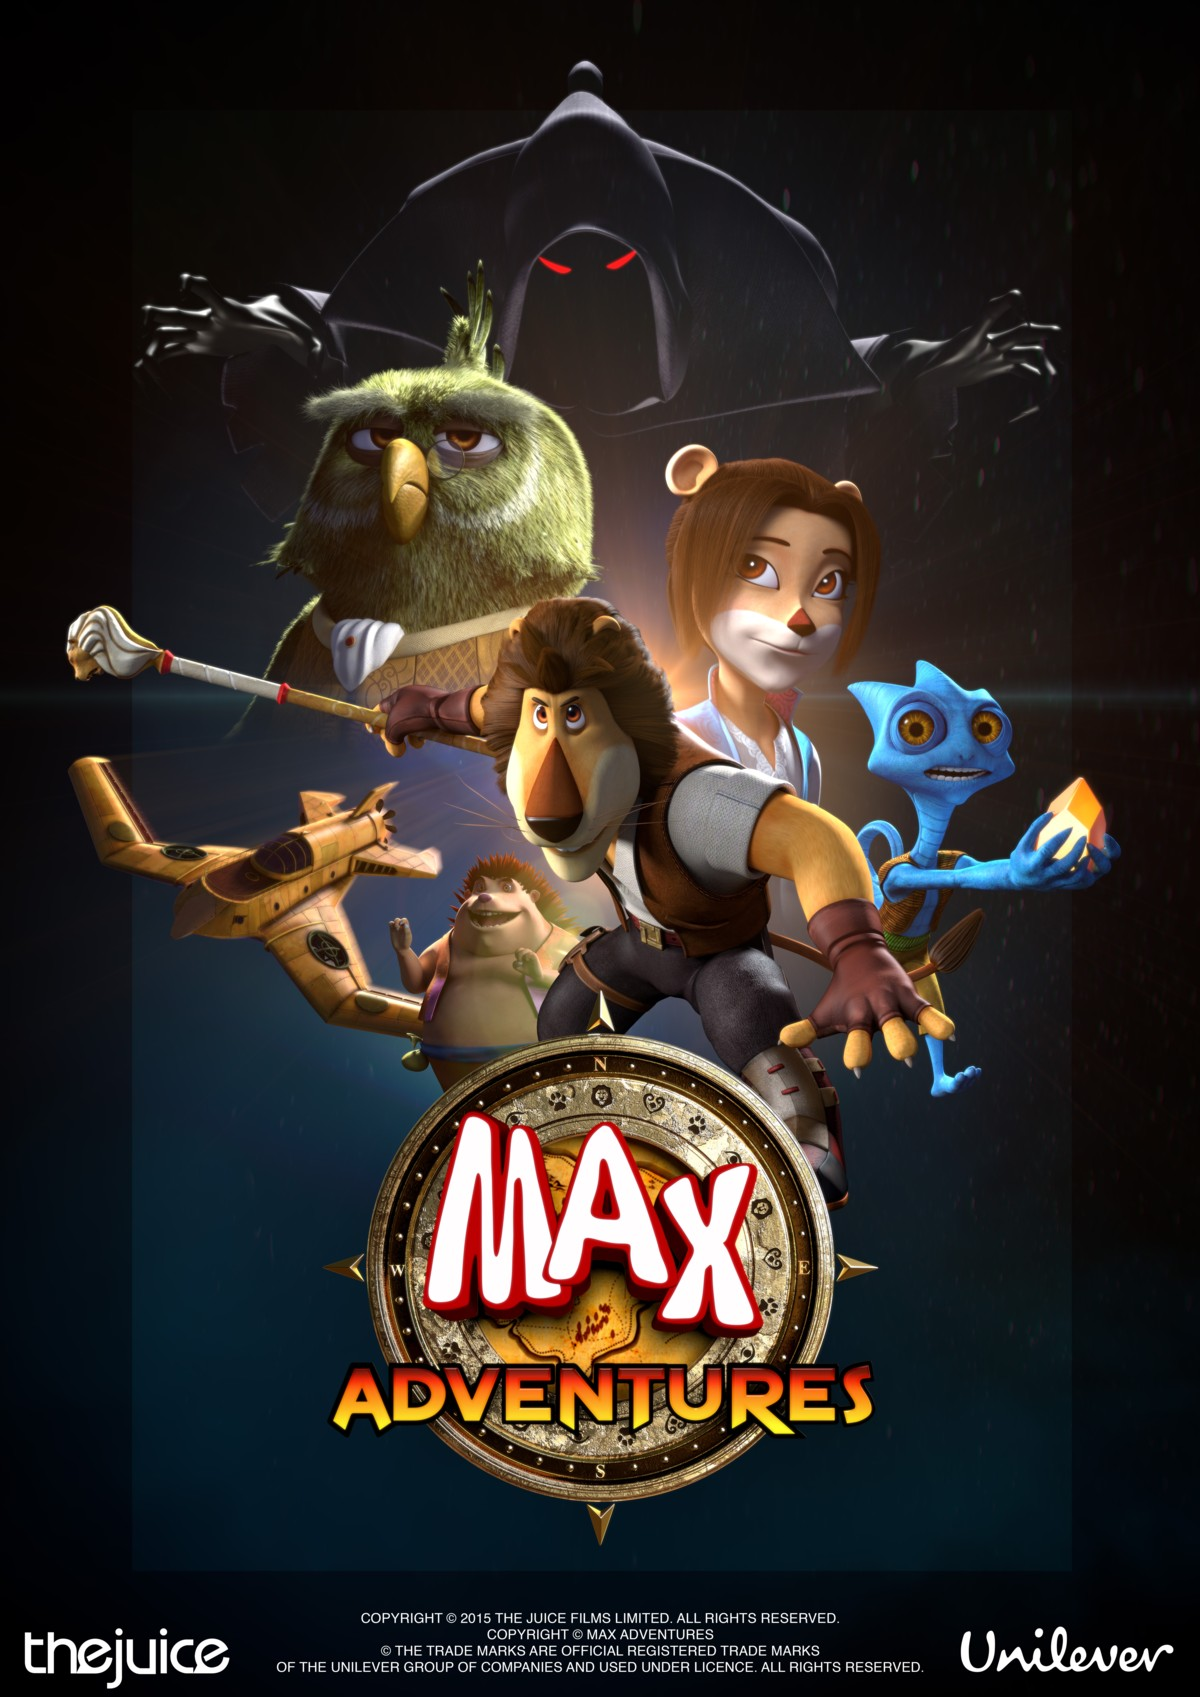 Polster Max Thejuice Debut New 4d Film Max Paddle Pop Adventures Blooloop